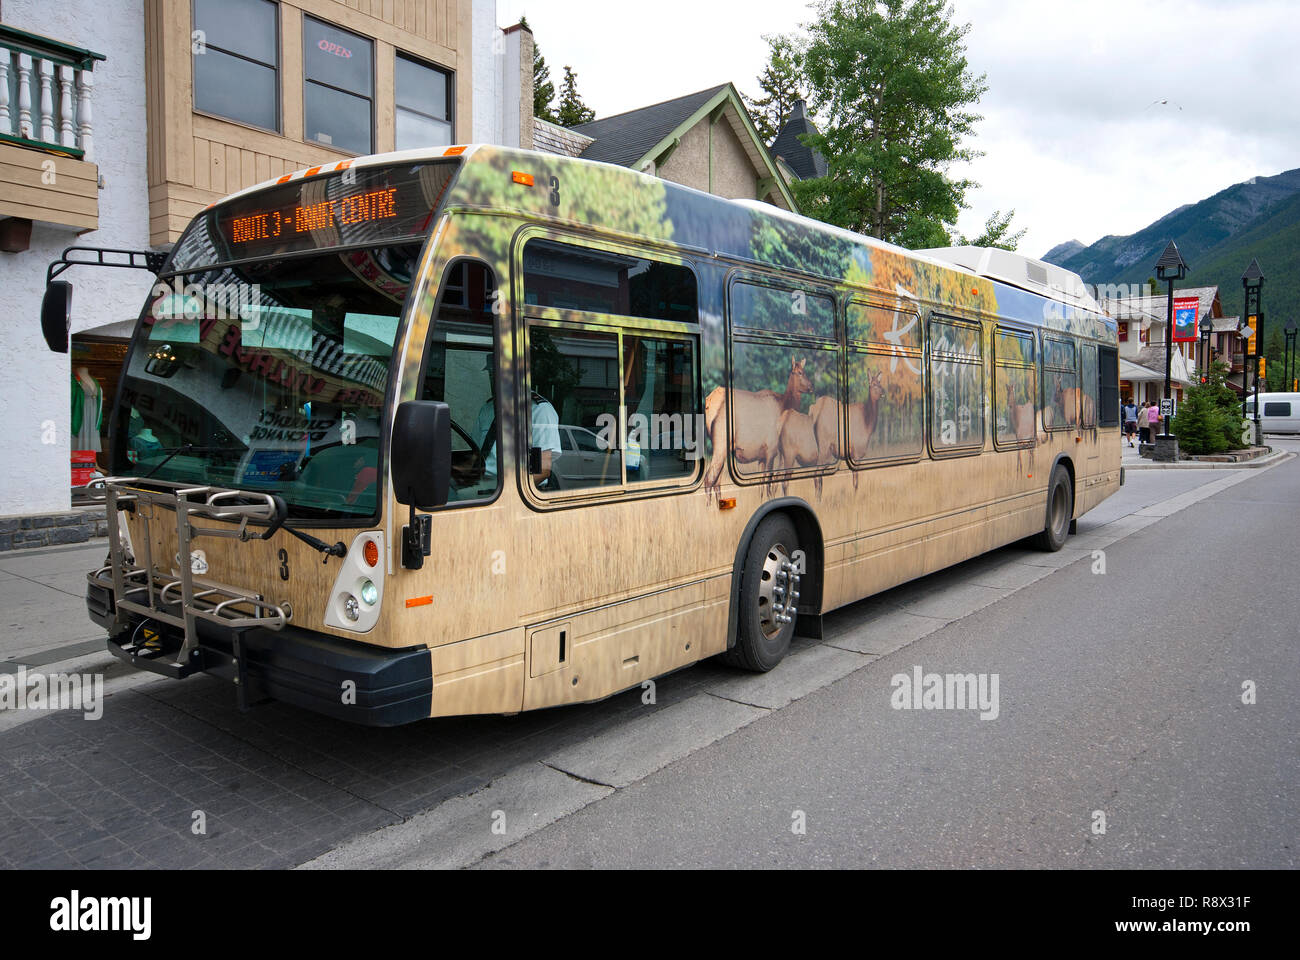 Roam bus with pictures of wildlife in Banff village, Banff National Park, Alberta, Canada - Stock Image